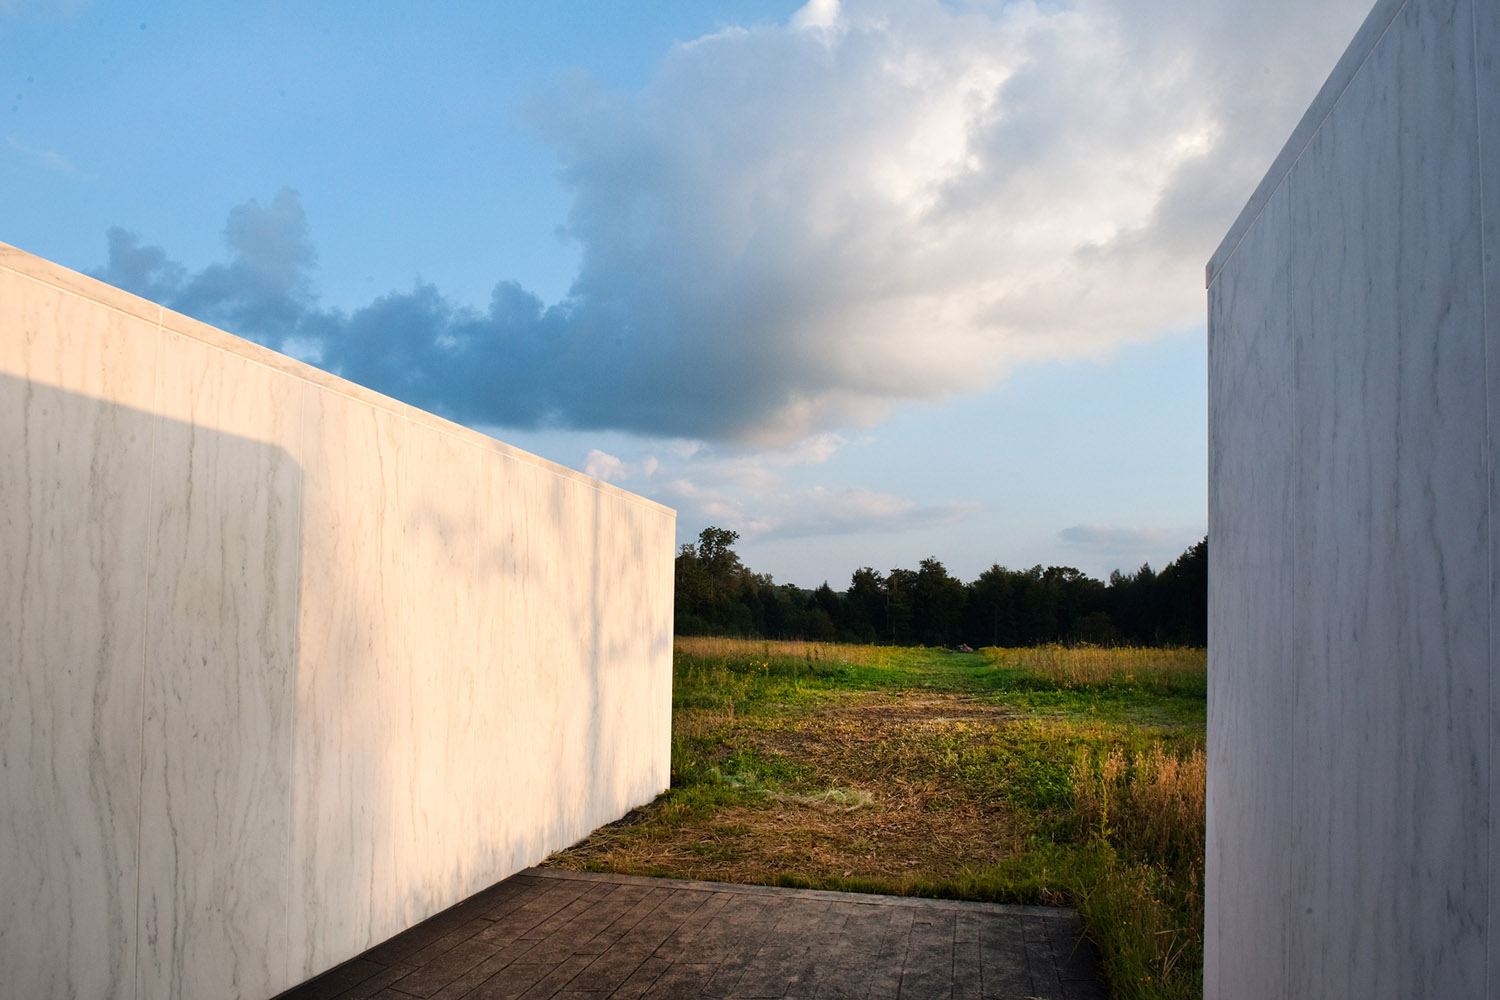 The day before the 10th anniversary of 9/11 at the Flight 93 National Memorial, Shanksville, Pa., Sept. 10, 2011.